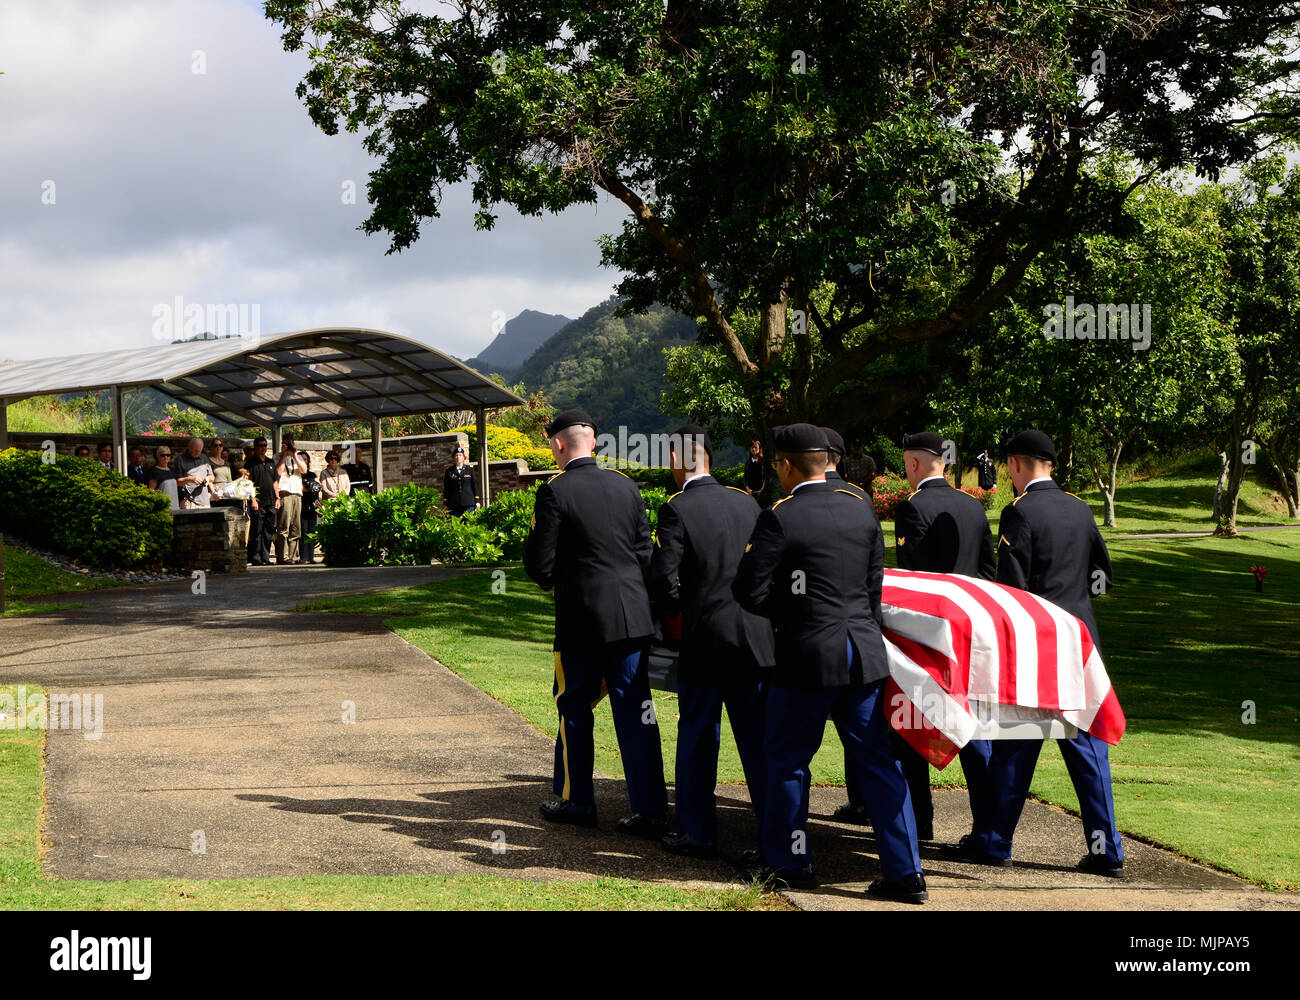 U.S. Soldiers assigned to 225th Brigade Support Battalion, 2nd Infantry Brigade Combat Team, 25th Infantry Division escort the remains of U.S. Army Pfc. Albert E. Atkins, Dec. 15, 2017, in the National Memorial Cemetery of the Pacific, Honolulu, Hawaii. On May 23, 1951, Atkins, a member of Company E, 2nd Battalion, 187th Airborne Infantry Regiment, 187th Airborne Regimental Combat Team, engaged enemy forces with his unit near Mae-Bong, South Korea. Atkins and two other soldiers from his company were reported missing in action. Atkins was recently identified through DNA analysis with the help o - Stock Image